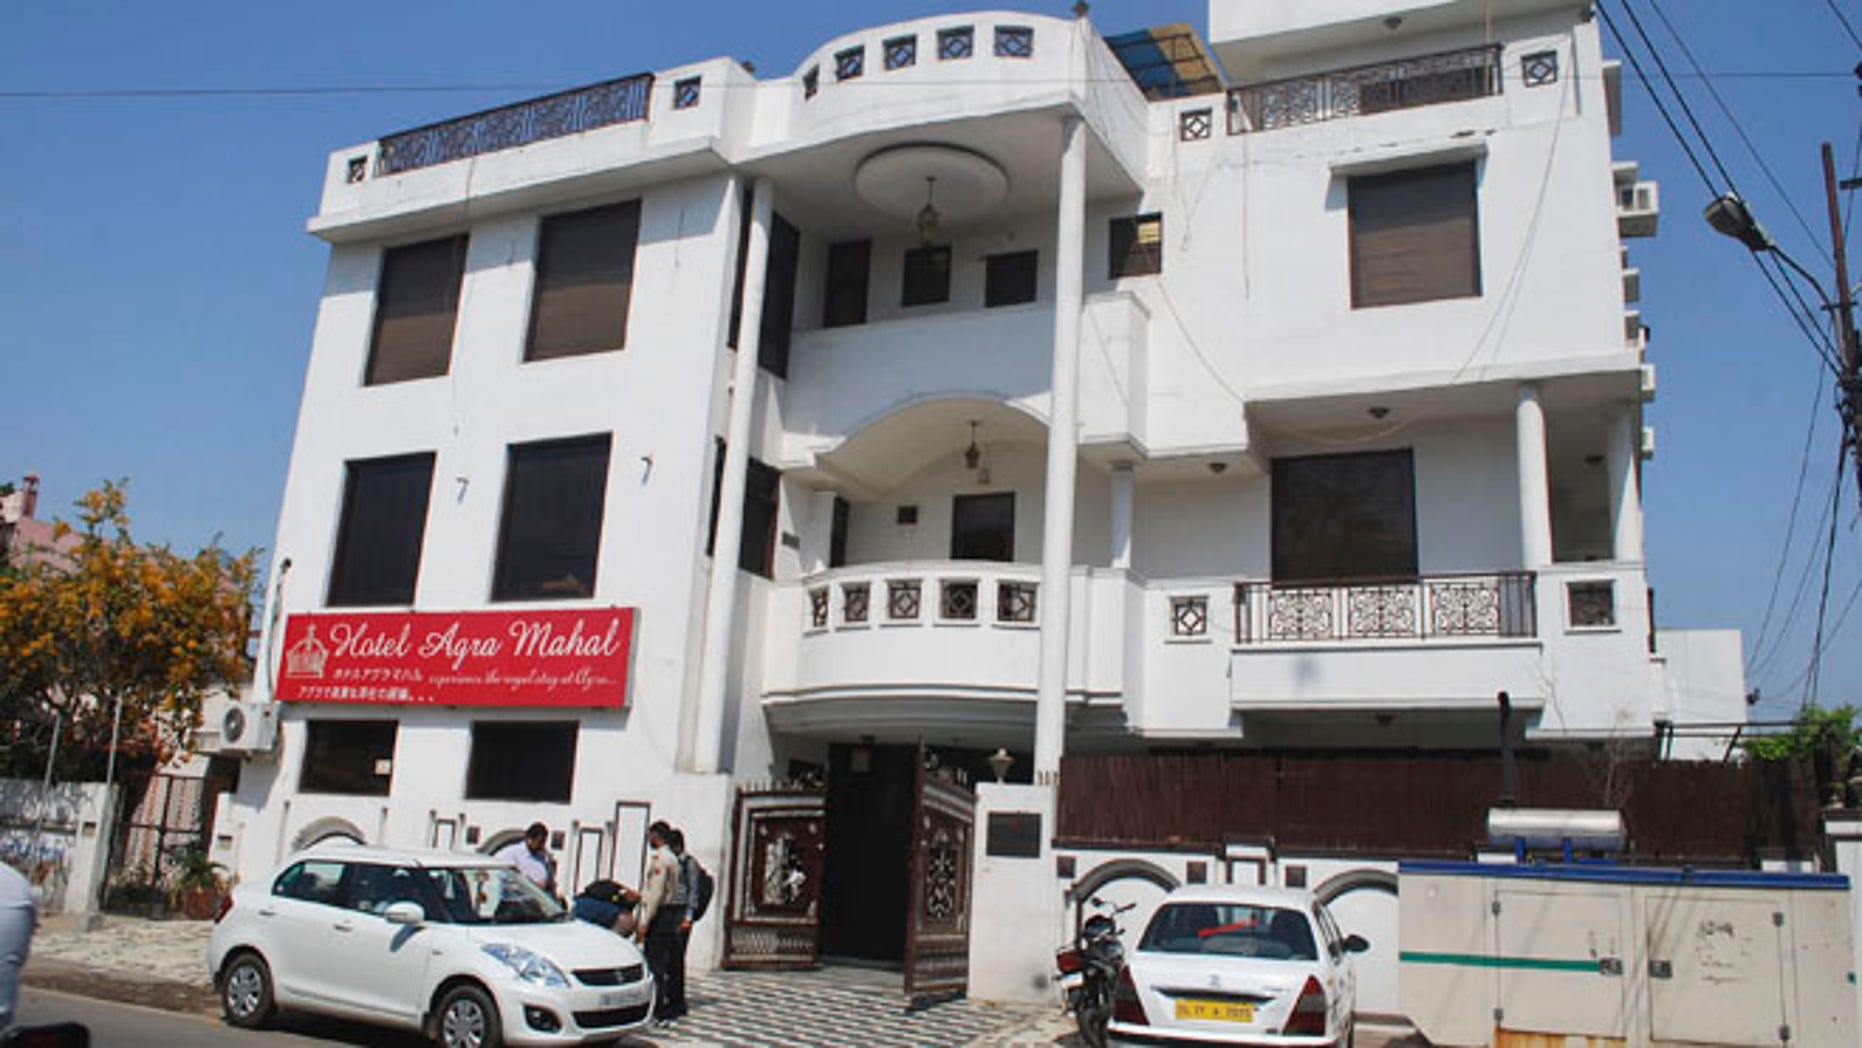 March 19, 2013: The Hotel Agra Mahal is seen in Agra, India. A British woman traveling around India jumped out of the third-floor window of her hotel room on Tuesday after the hotel's owner tried to force his way into the room, causing her to fear she was about to be sexually assaulted, police said. The woman was not badly hurt, although she suffered some injuries to her legs, police officer Sushant Gaur said. Police arrested the hotel owner in connection with the incident in Agra, the site of the Taj Mahal, one of India's most cherished tourist attractions, Gaur said.